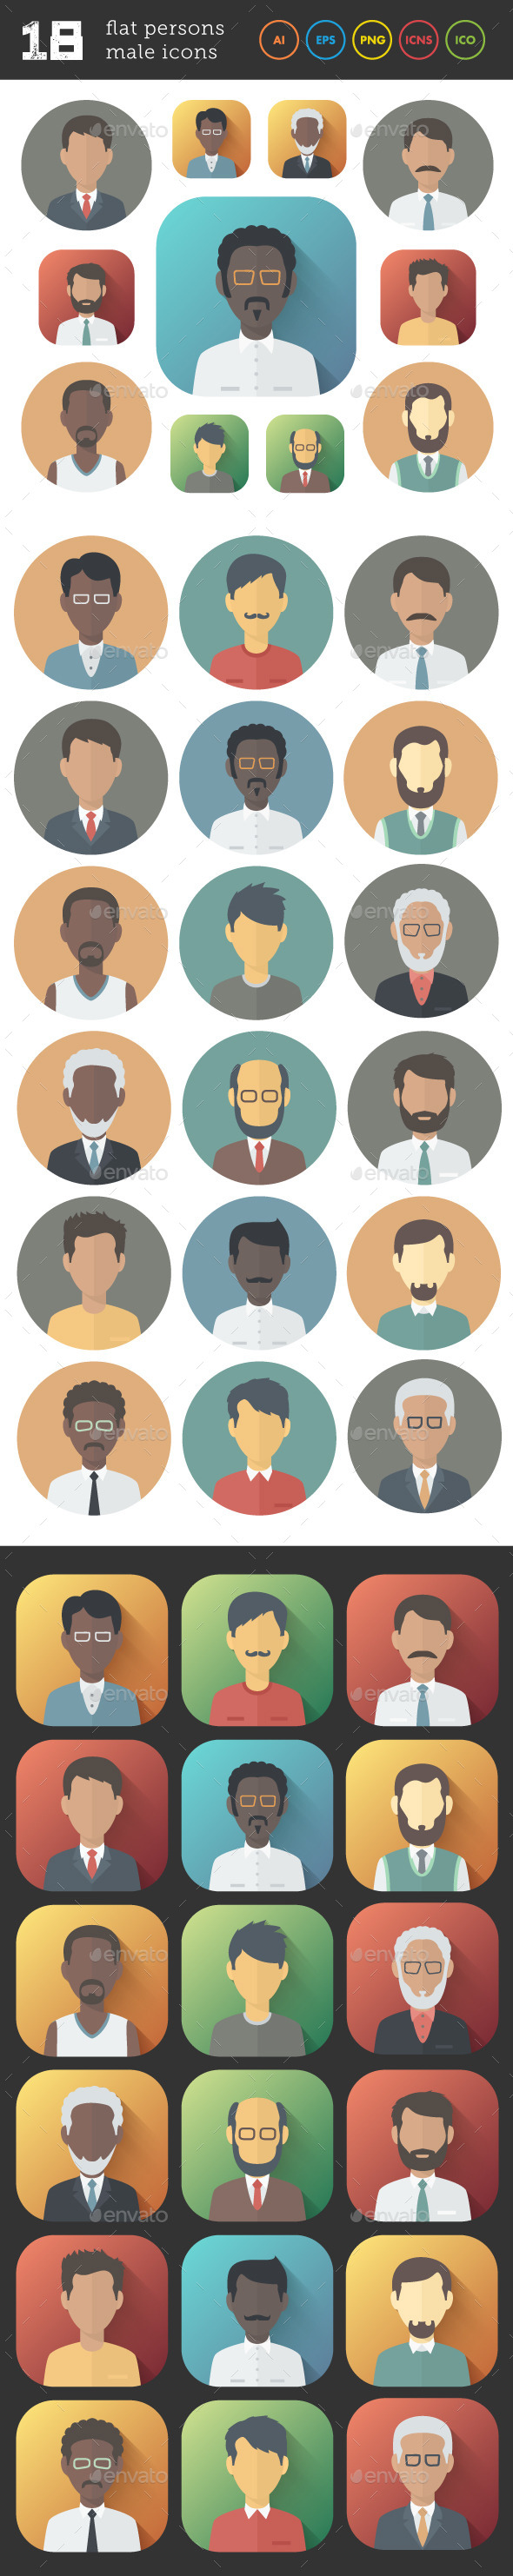 Flat Icons Set of Male Persons - People Characters